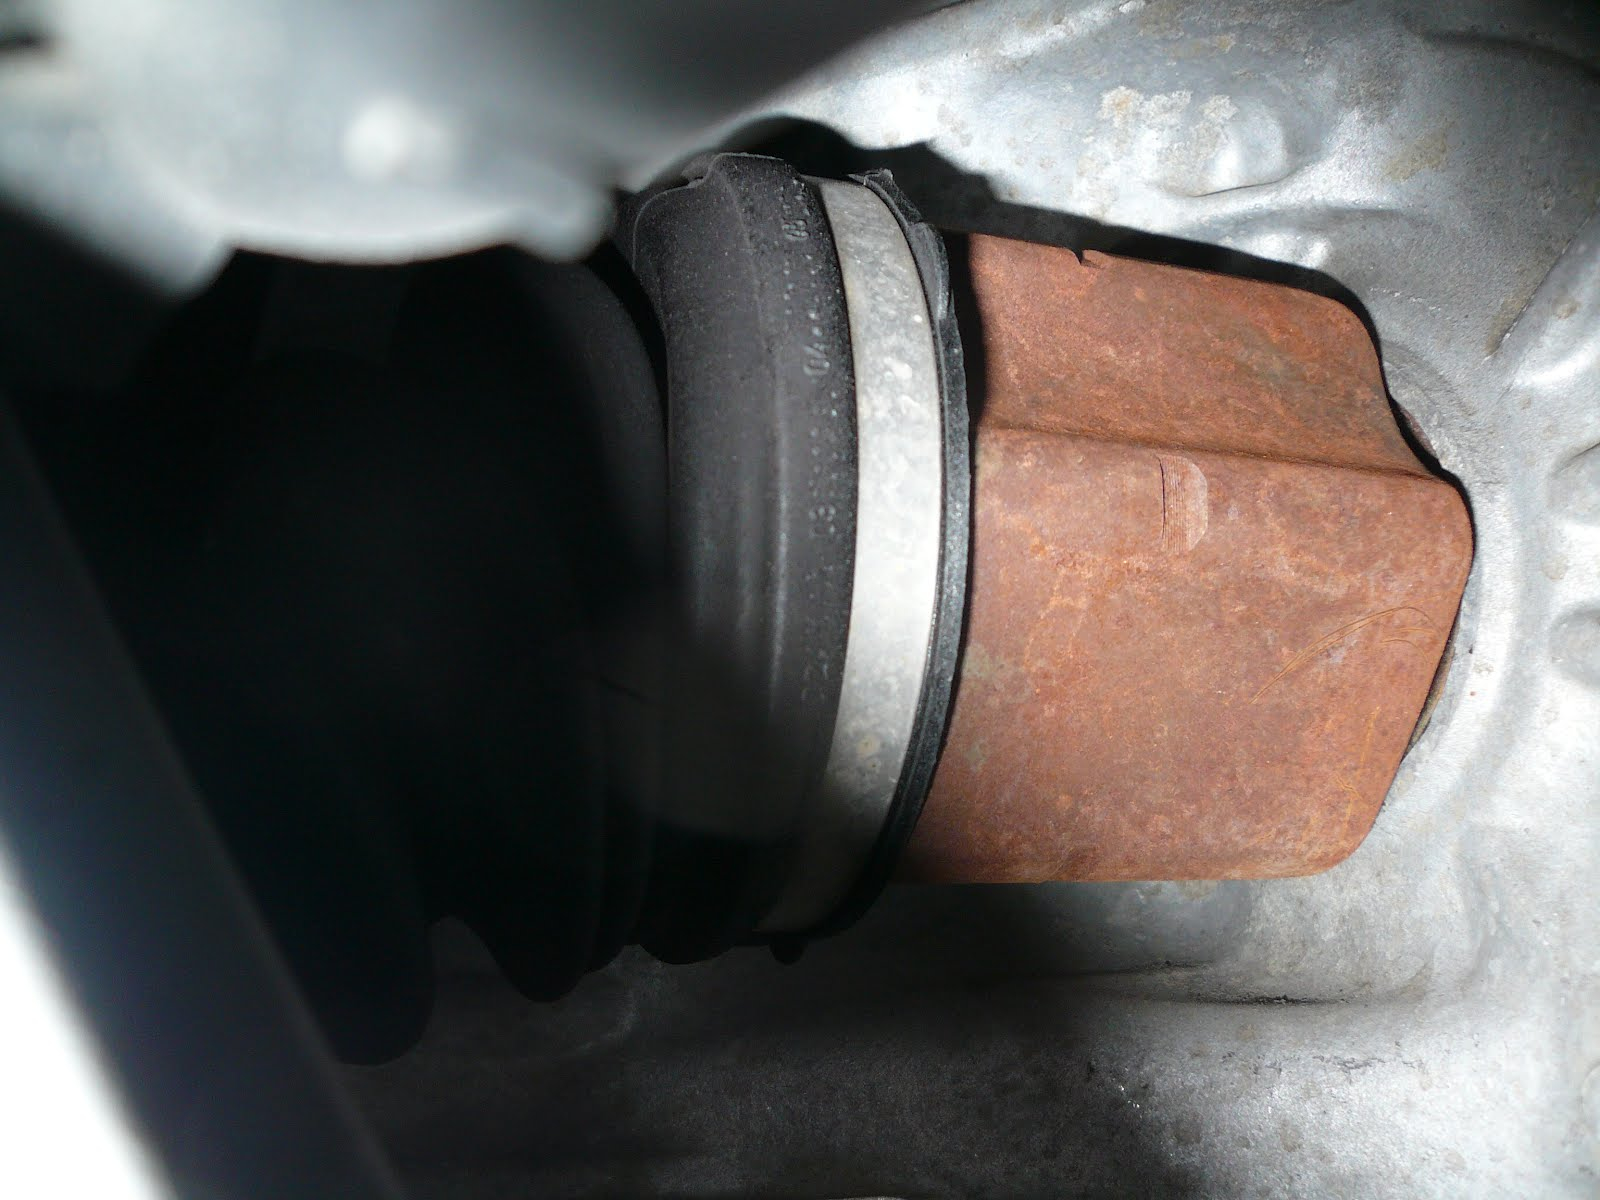 VW Passat Repair: How to Replace The CV Joint Boot on a 2006